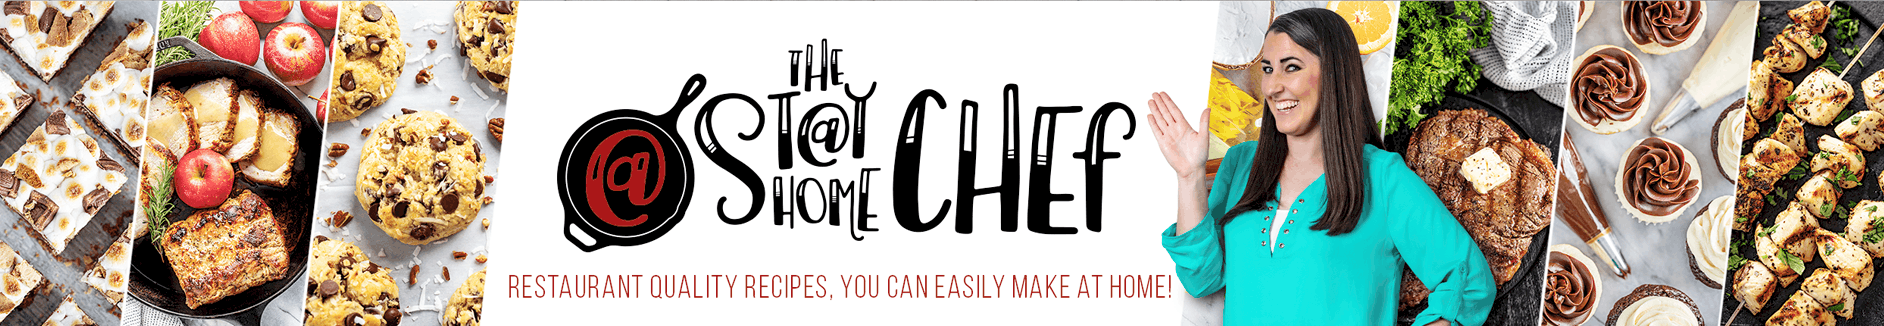 The Stay At Home Chef Main Logo in the center of banner image with a clipped image to the right of Rachel Farnsworth wearing a turquoise blouse waiving with angled images of food on either side of the central logo.